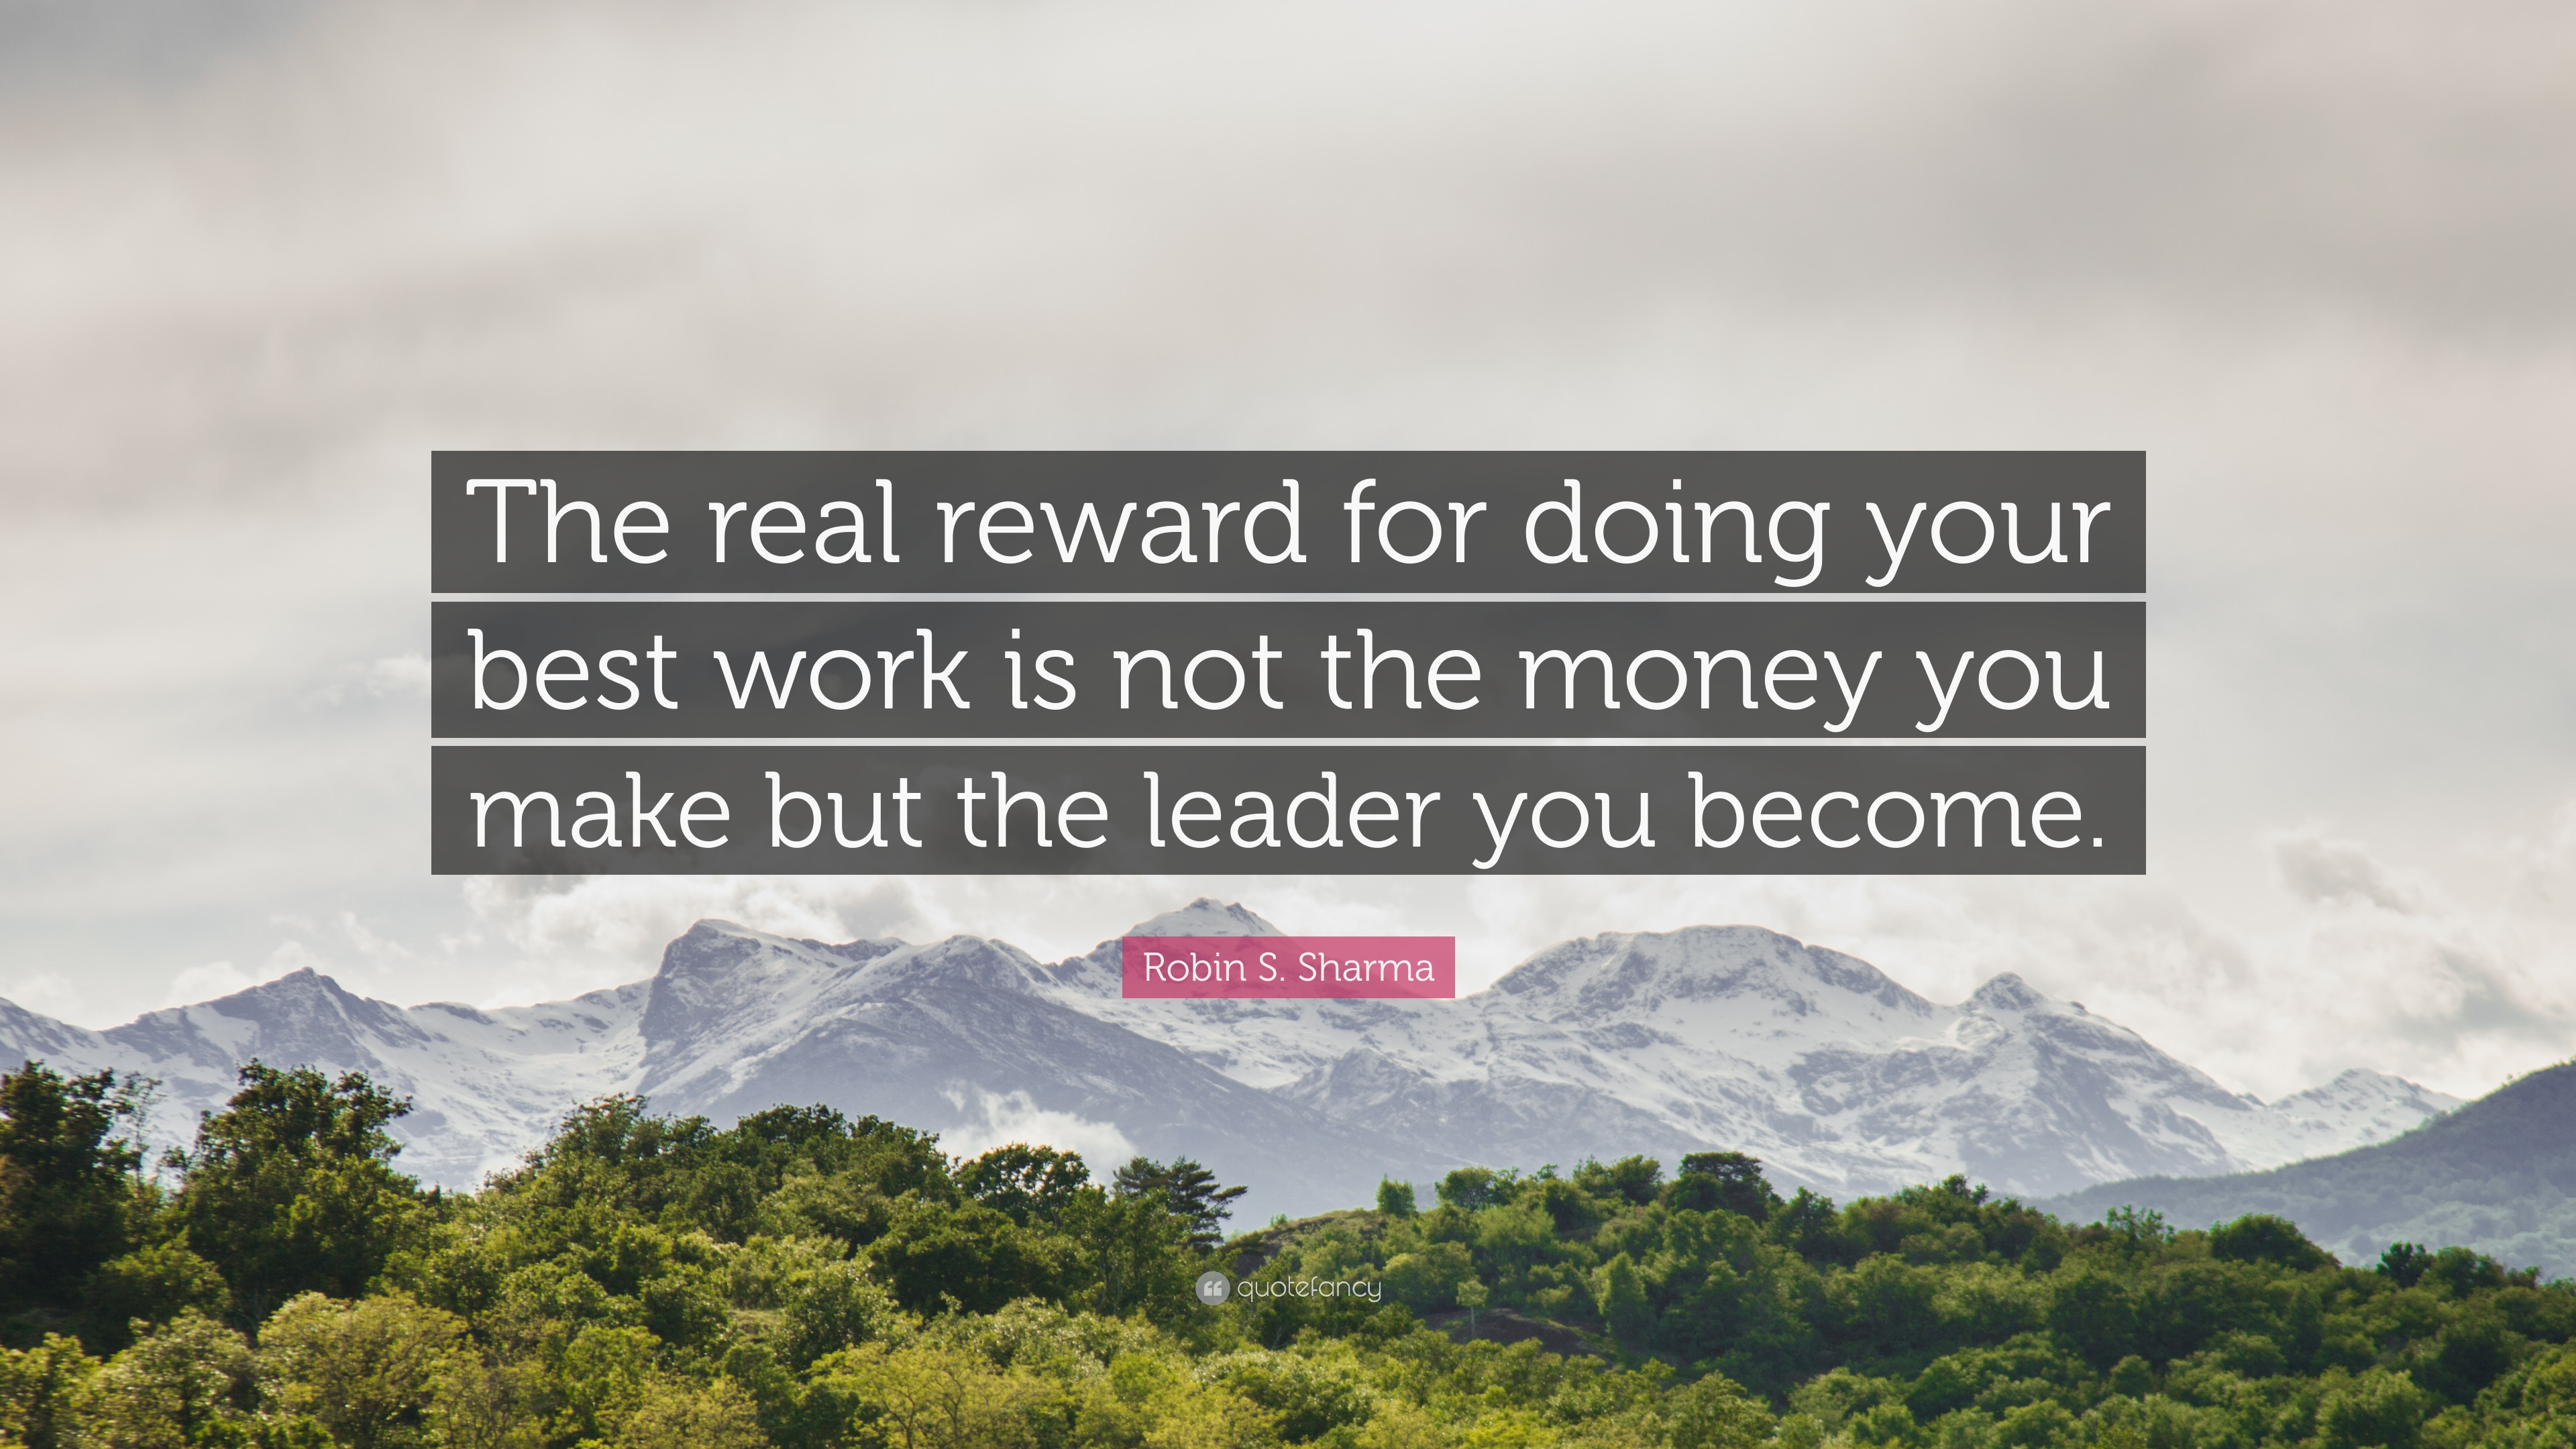 Robin S Sharma Quote The Real Reward For Doing Your Best Work Is